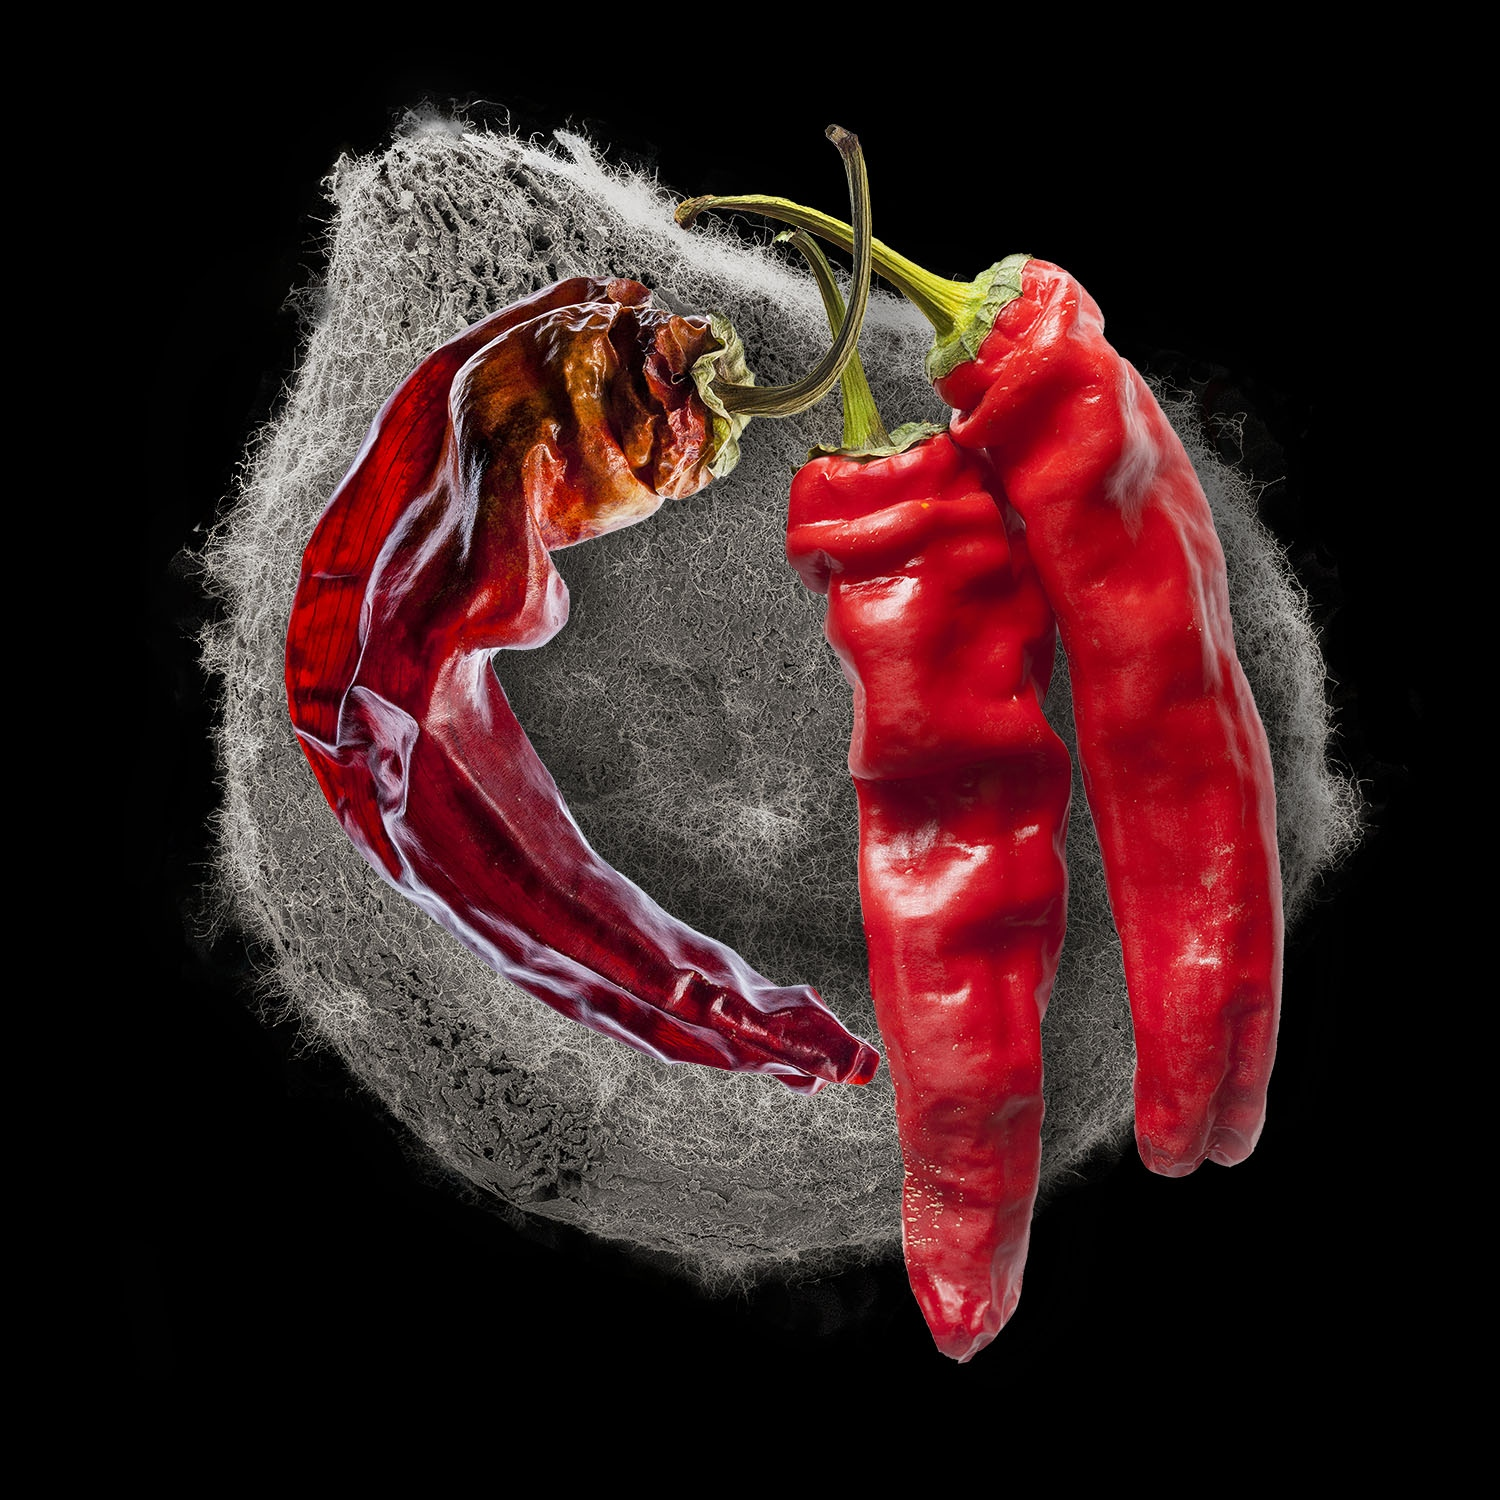 Chilis are threatened by wild swings of drought and flooding.